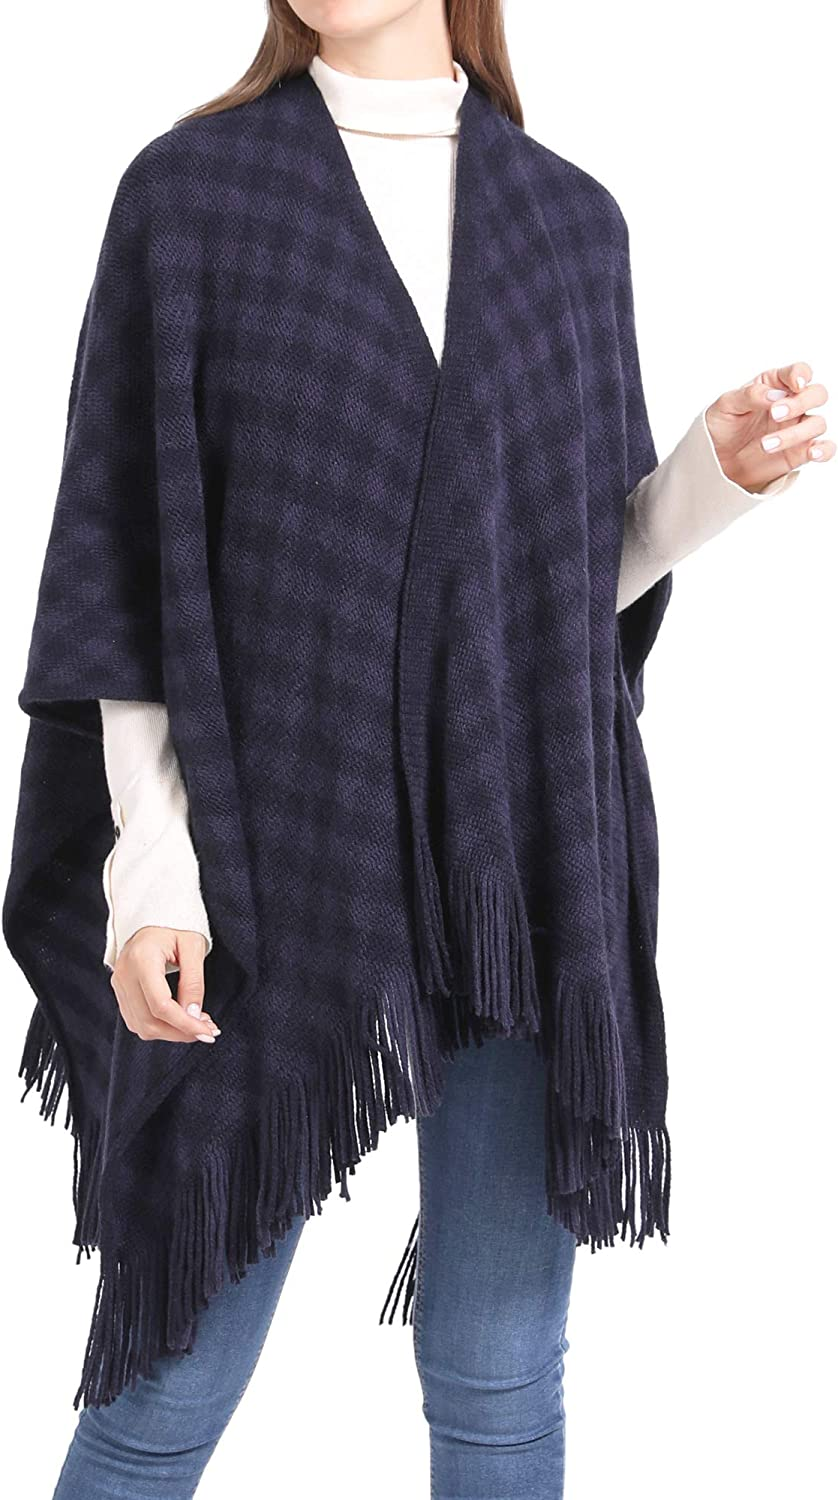 Knit Shawl Wrap for Women Knitted Poncho Cape with Pocket Long Cardigan Open Front Sweater with Tassel